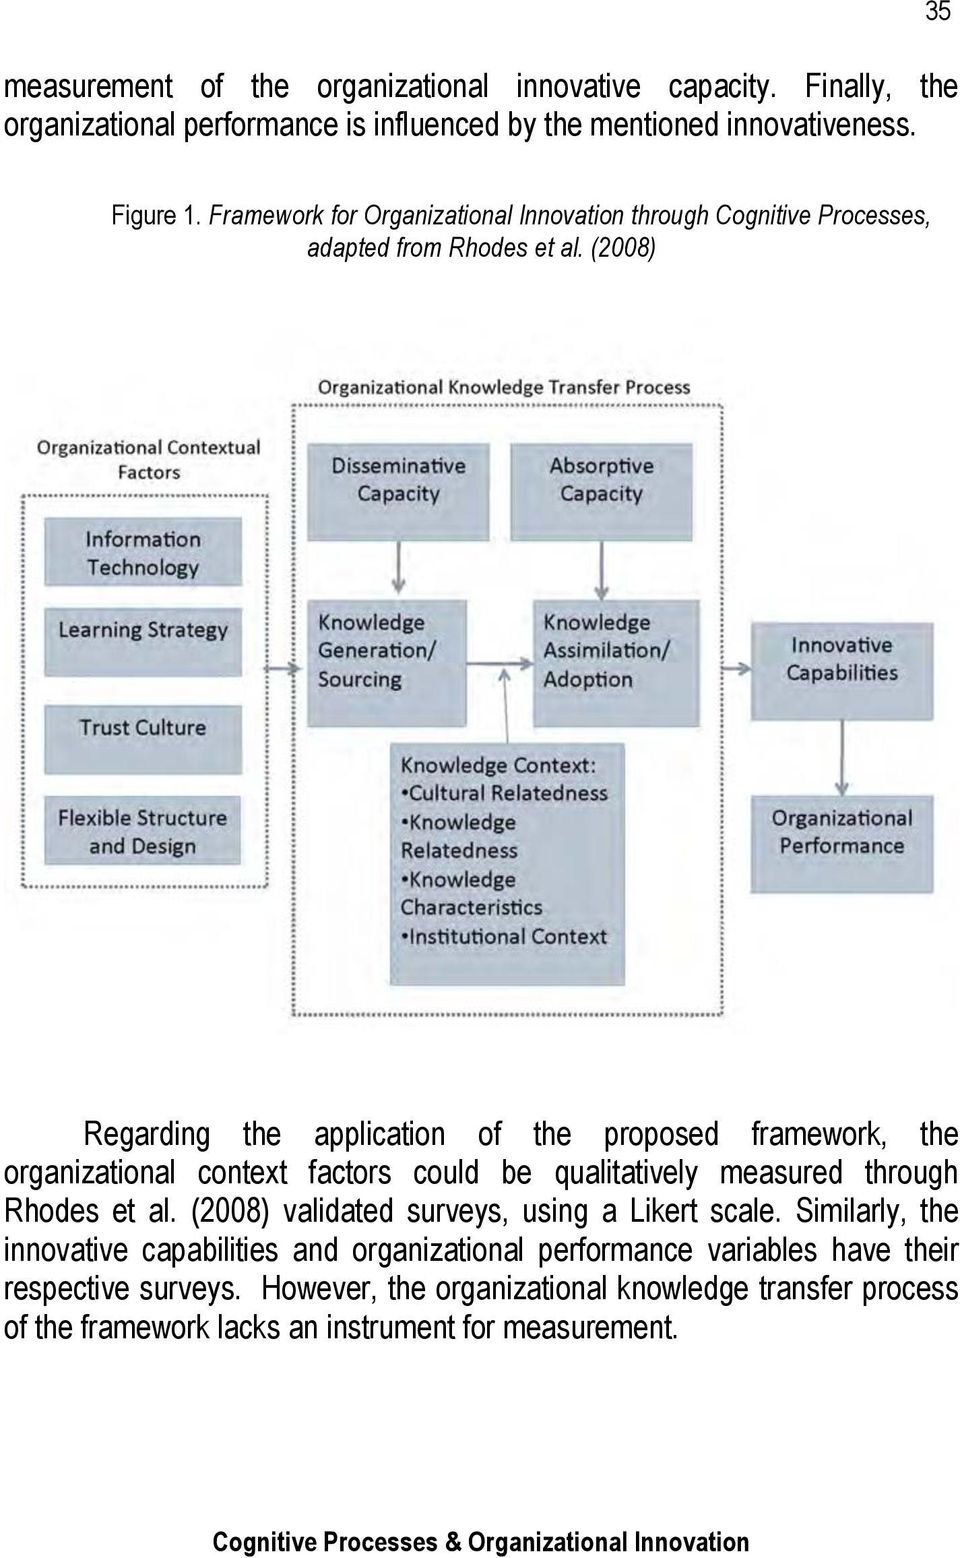 (2008) Regarding the application of the proposed framework, the organizational context factors could be qualitatively measured through Rhodes et al.